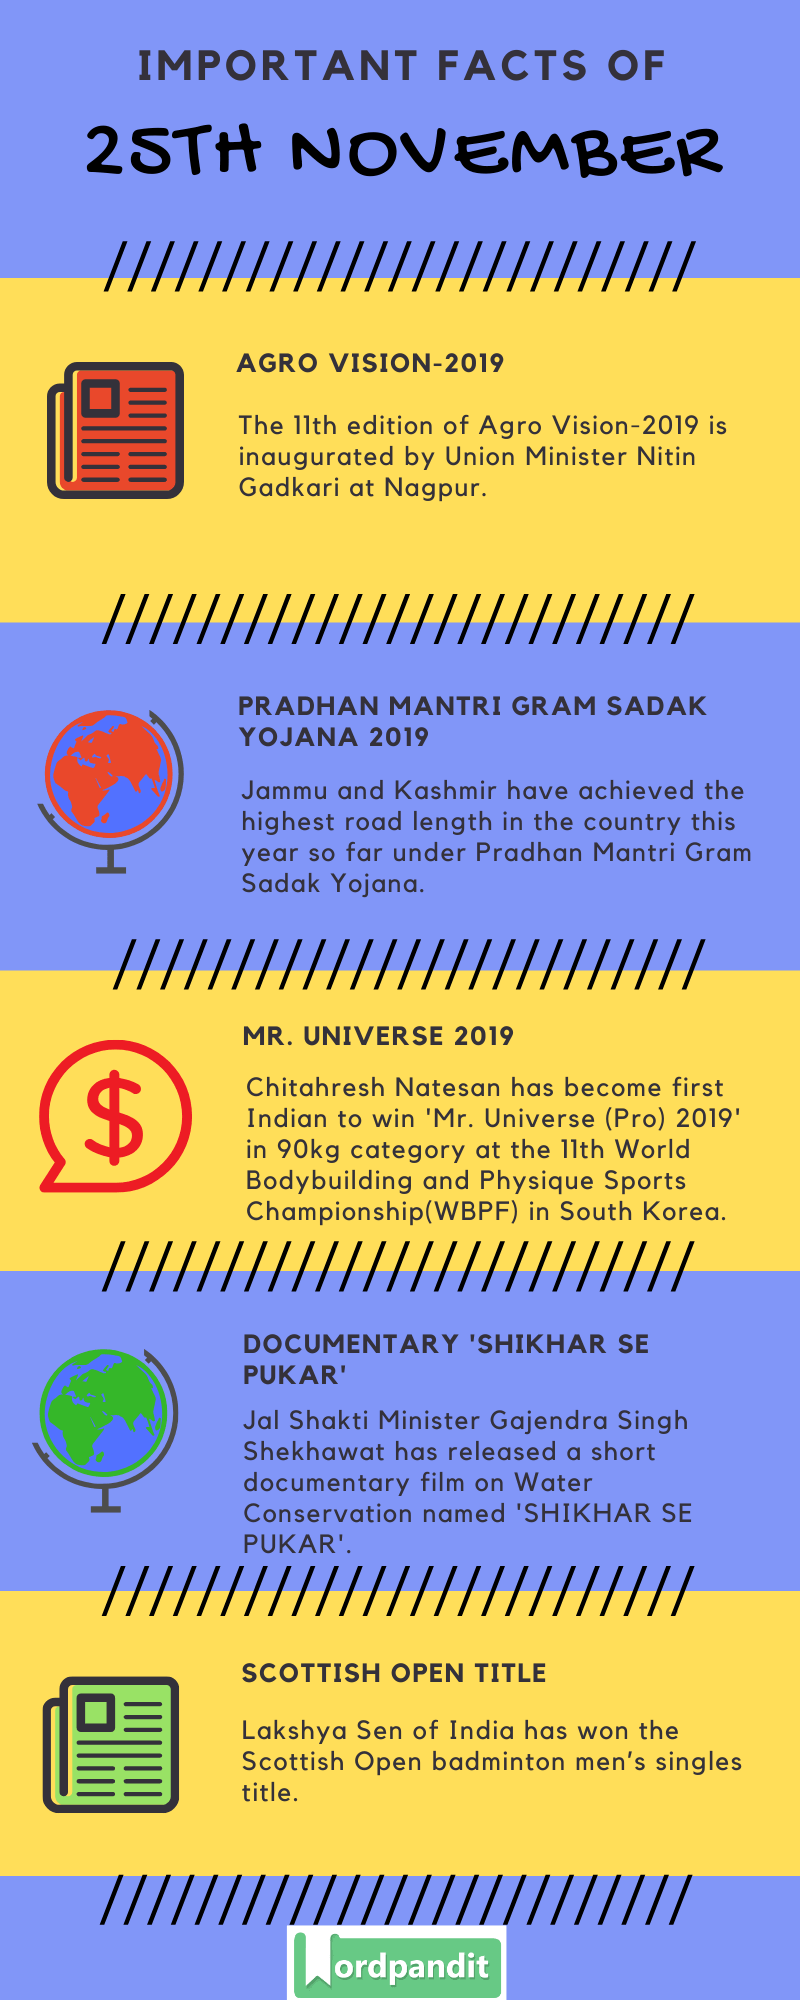 Daily Current Affairs 25 November 2019 Current Affairs Quiz 25 November 2019 Current Affairs Infographic